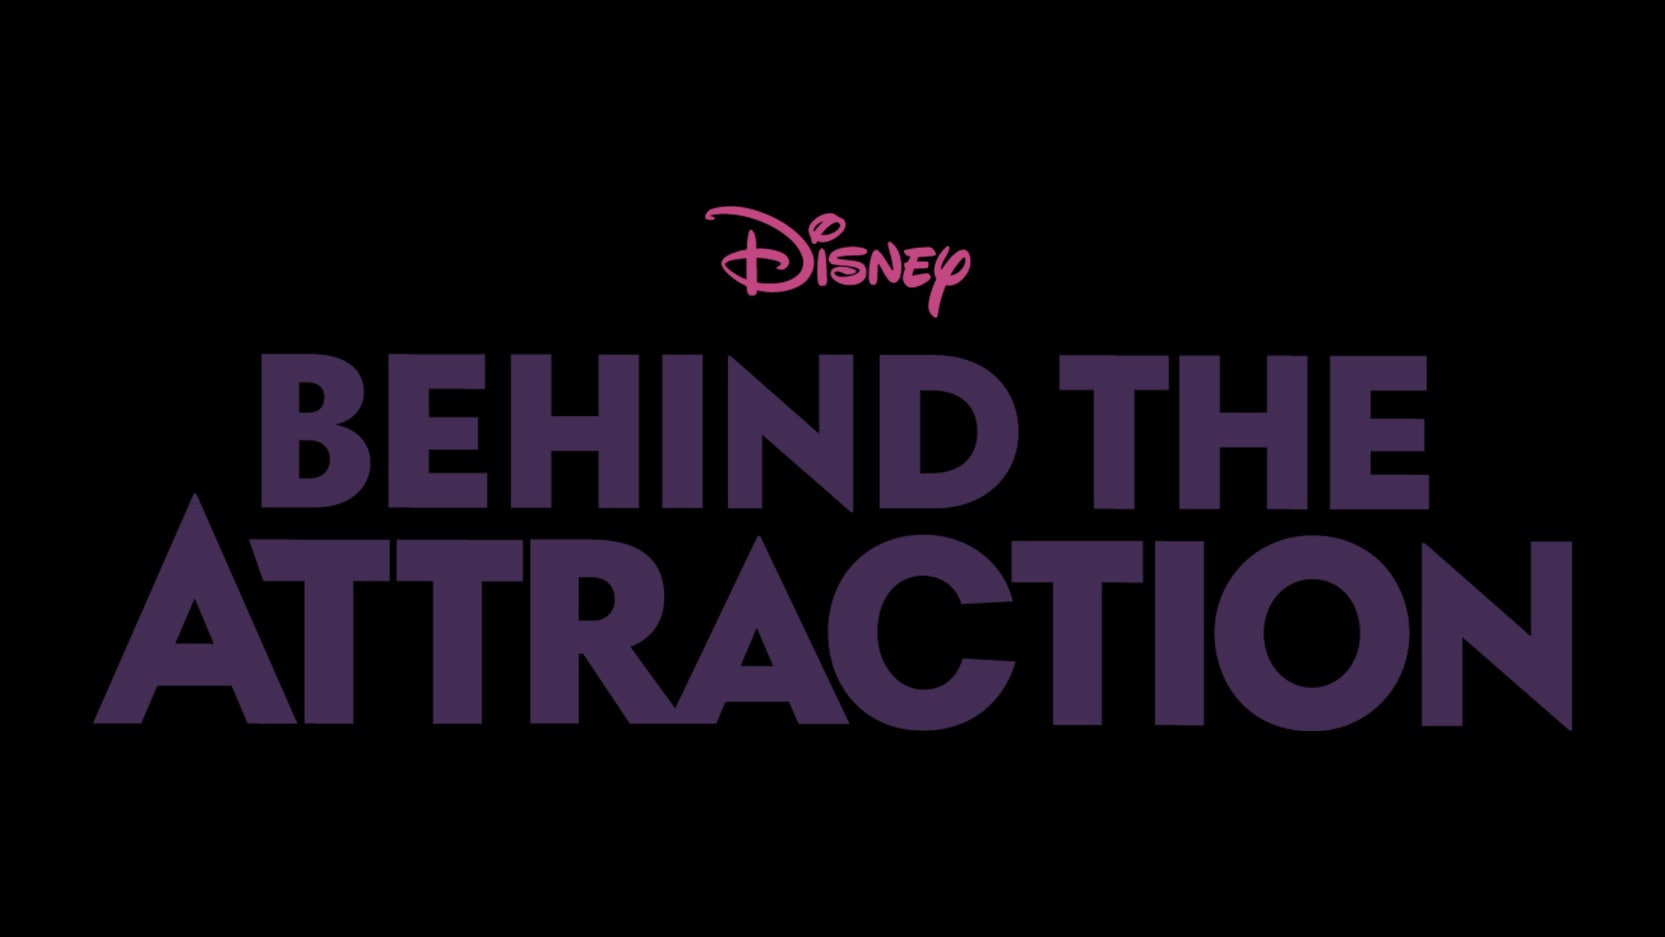 """DISNEY+ GIVES AN ALL-ACCESS PASS TO DISNEY'S  BELOVED ATTRACTIONS WITH THE PREMIERE OF  """"BEHIND THE ATTRACTION"""" ON JULY 16"""